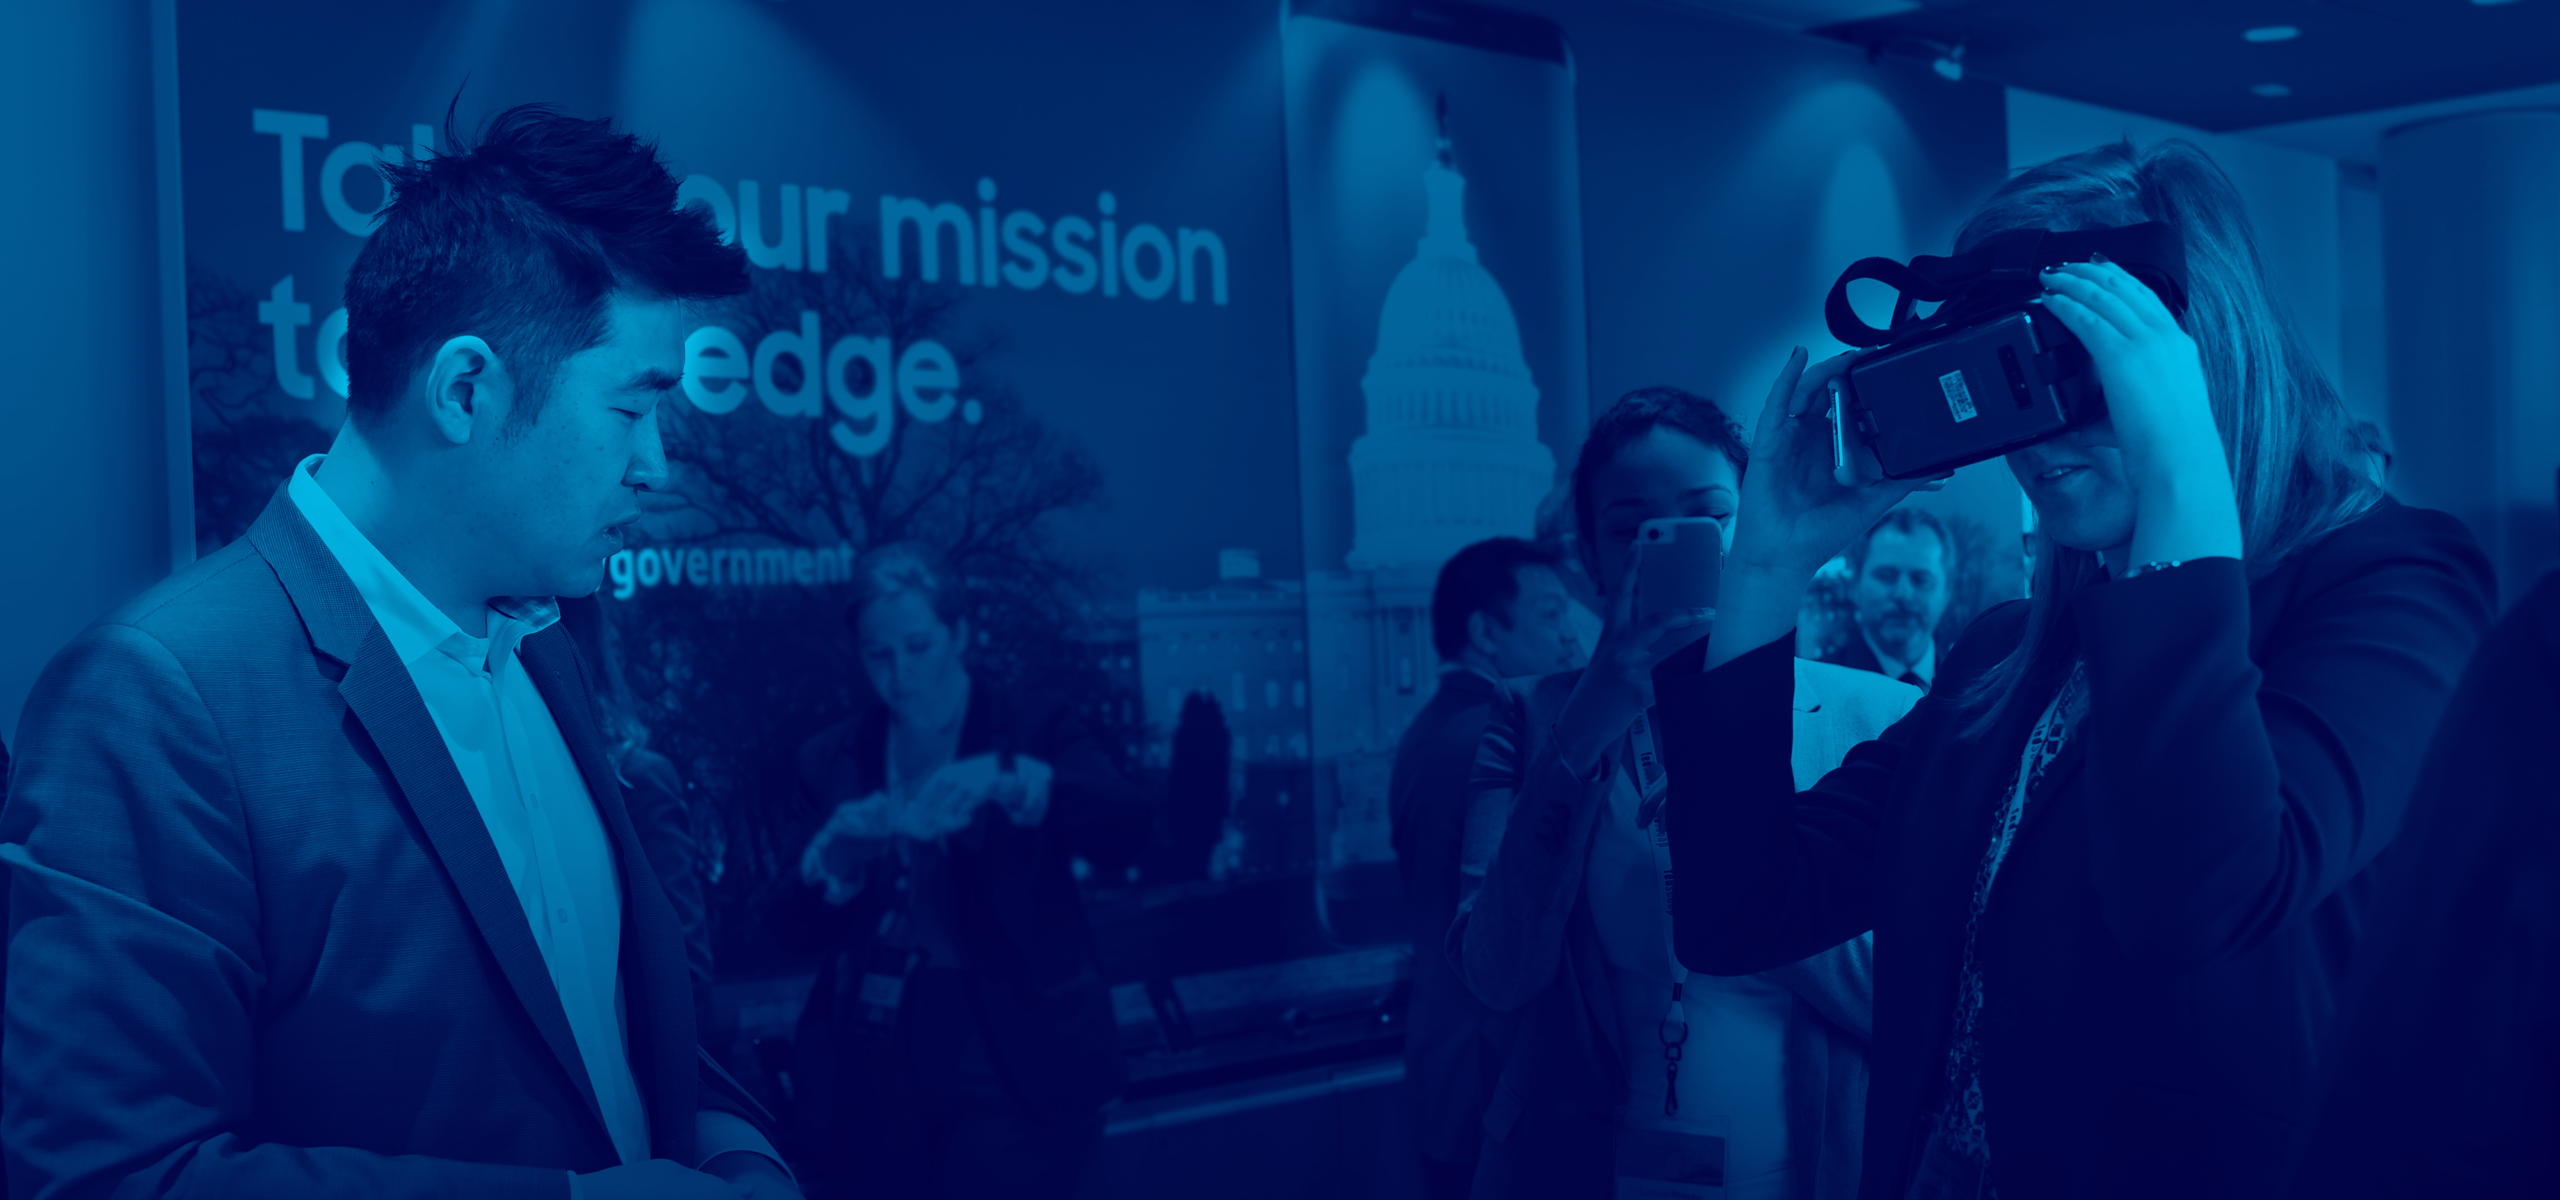 The future of mobile technology innovation in federal